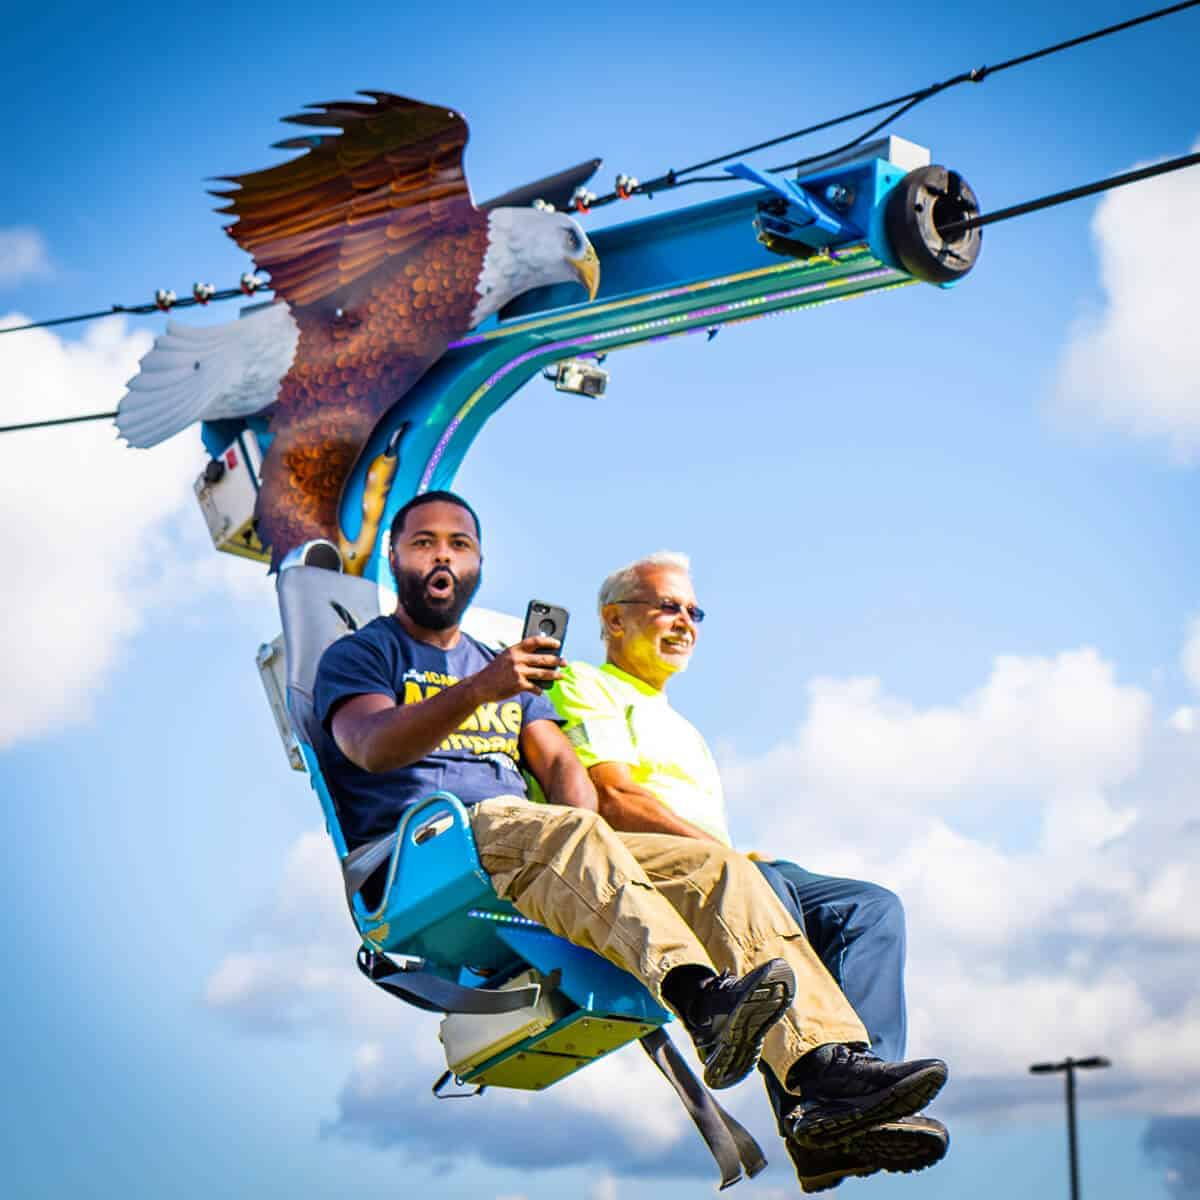 Men from corporate party enjoying themselves on the Soaring Eagle zip line